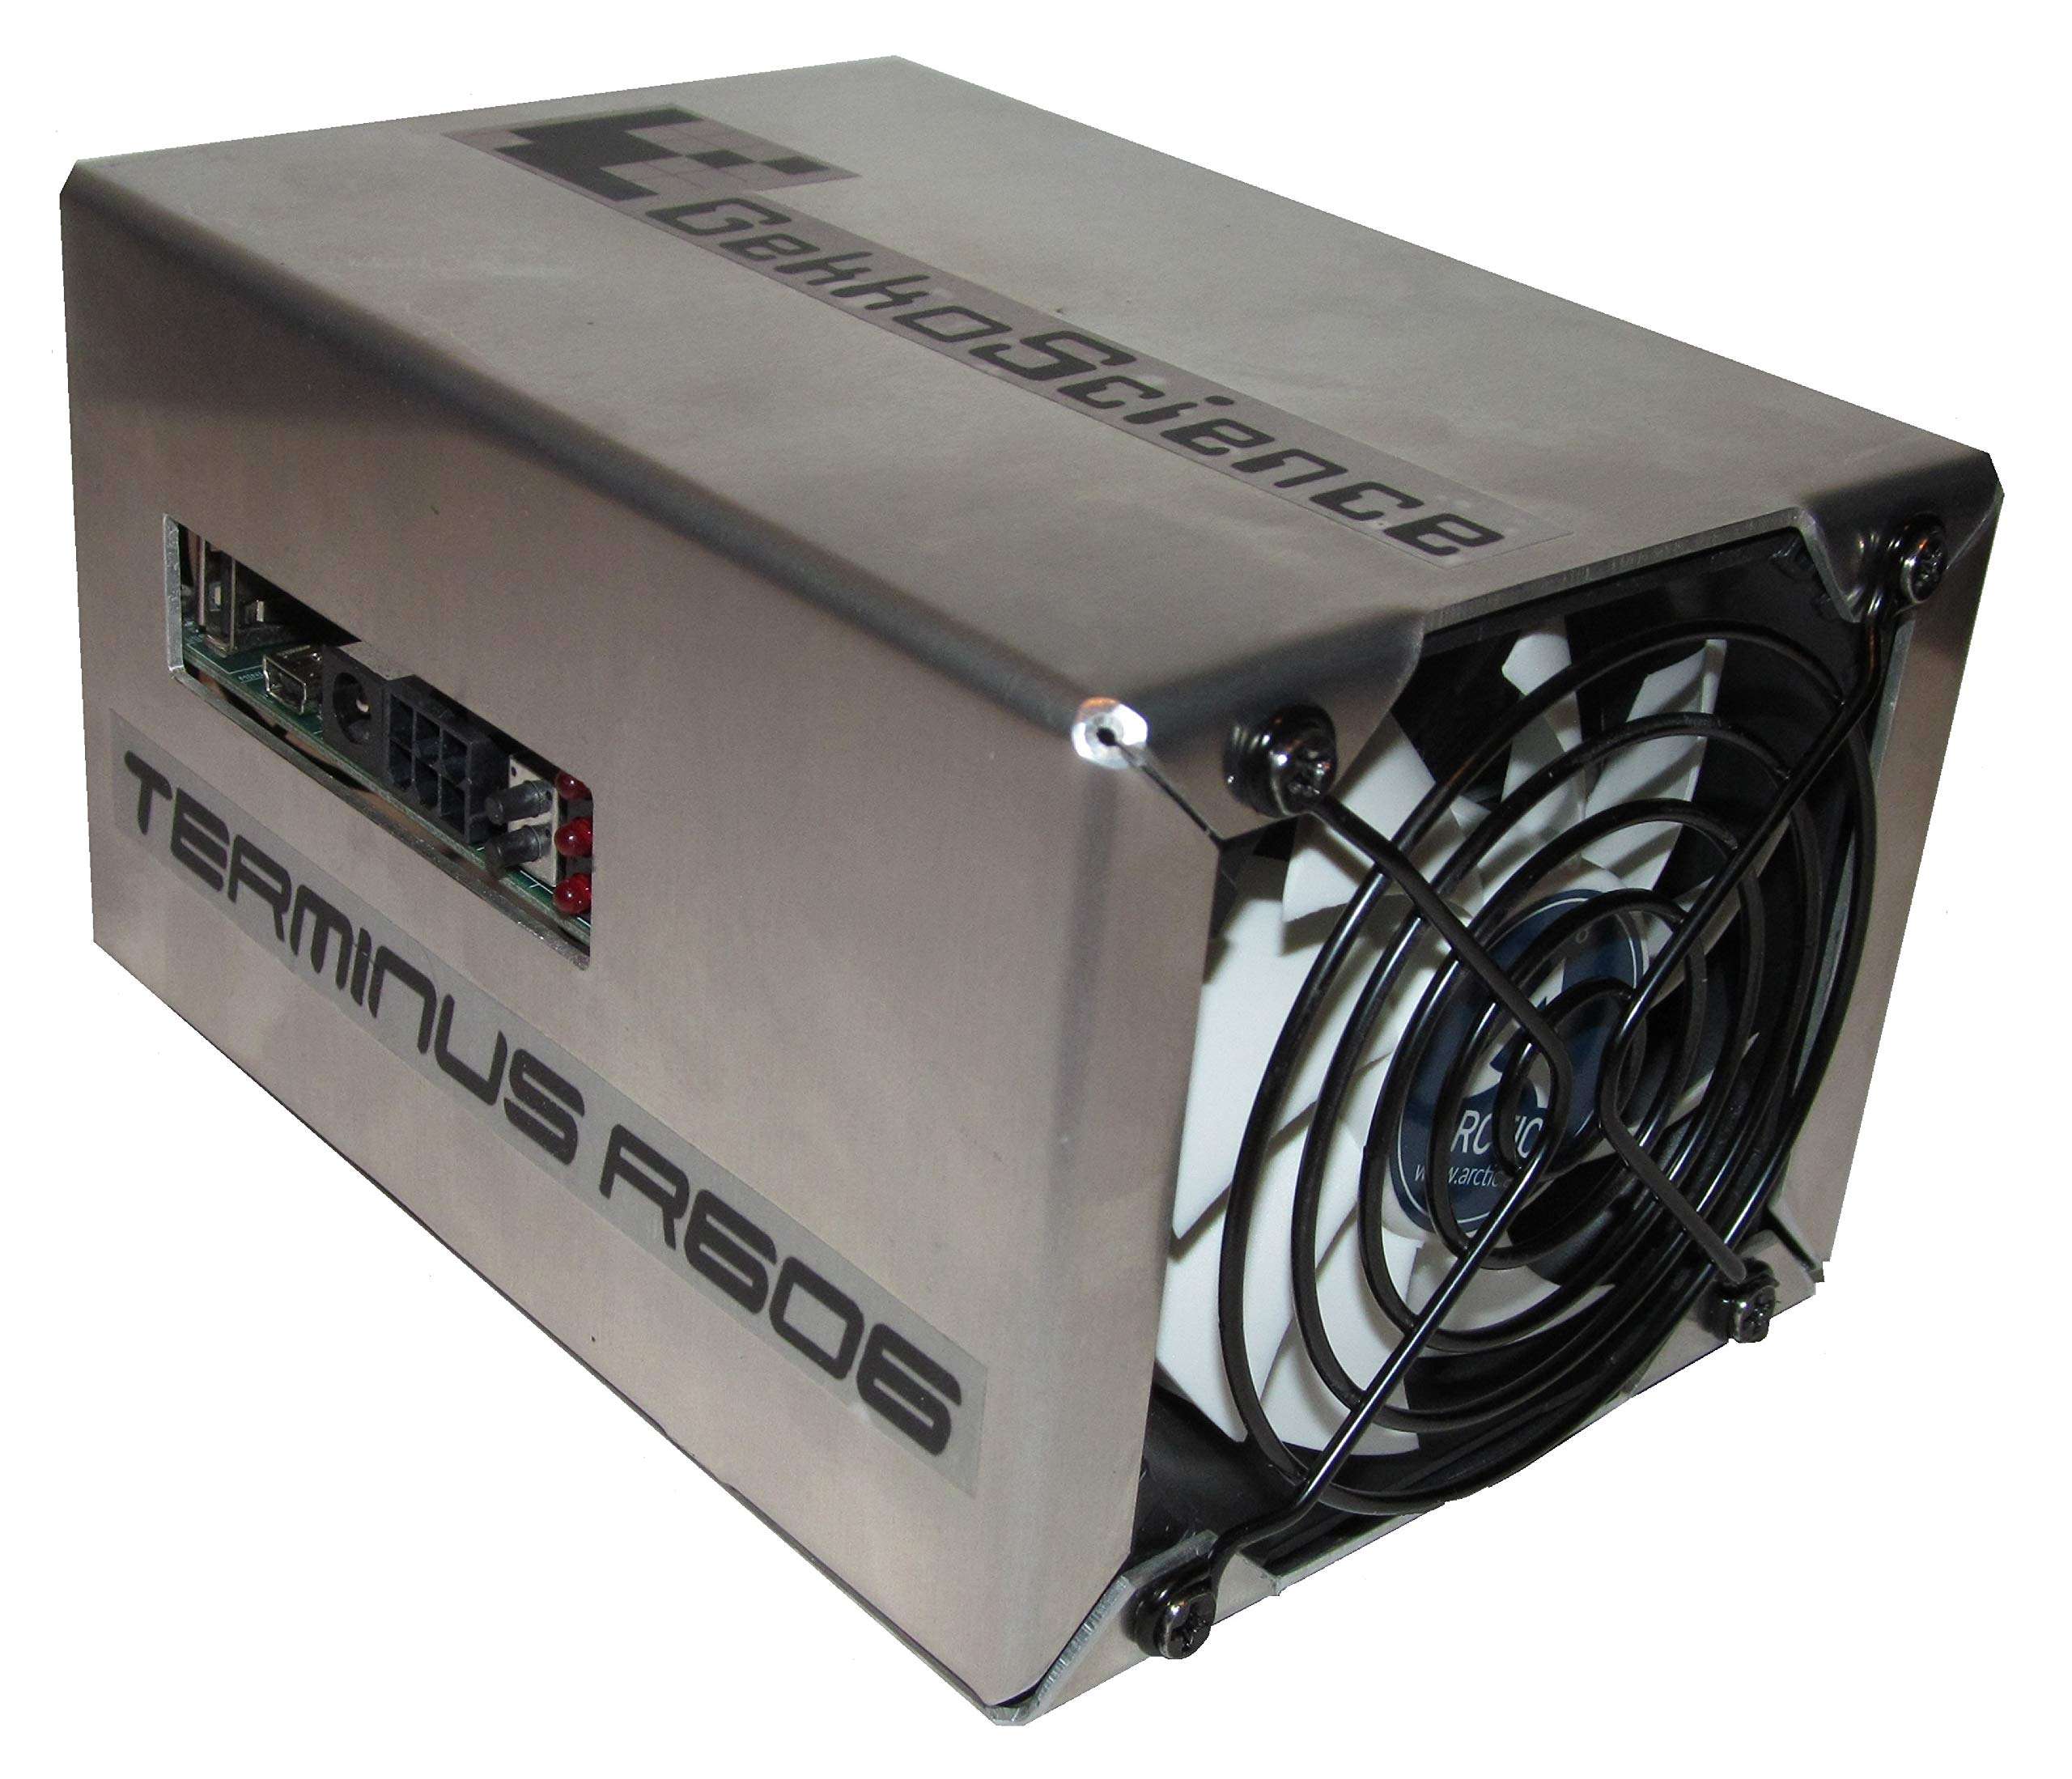 GekkoScience (up to) 1Th/s+ R606 Terminus USB Pod Miner/Bitcoin Miner (Only ~100W Power Consumption) Quiet, USB Miner, Great for Beginners & Experts (Most Efficient Bitcoin Miner Available)